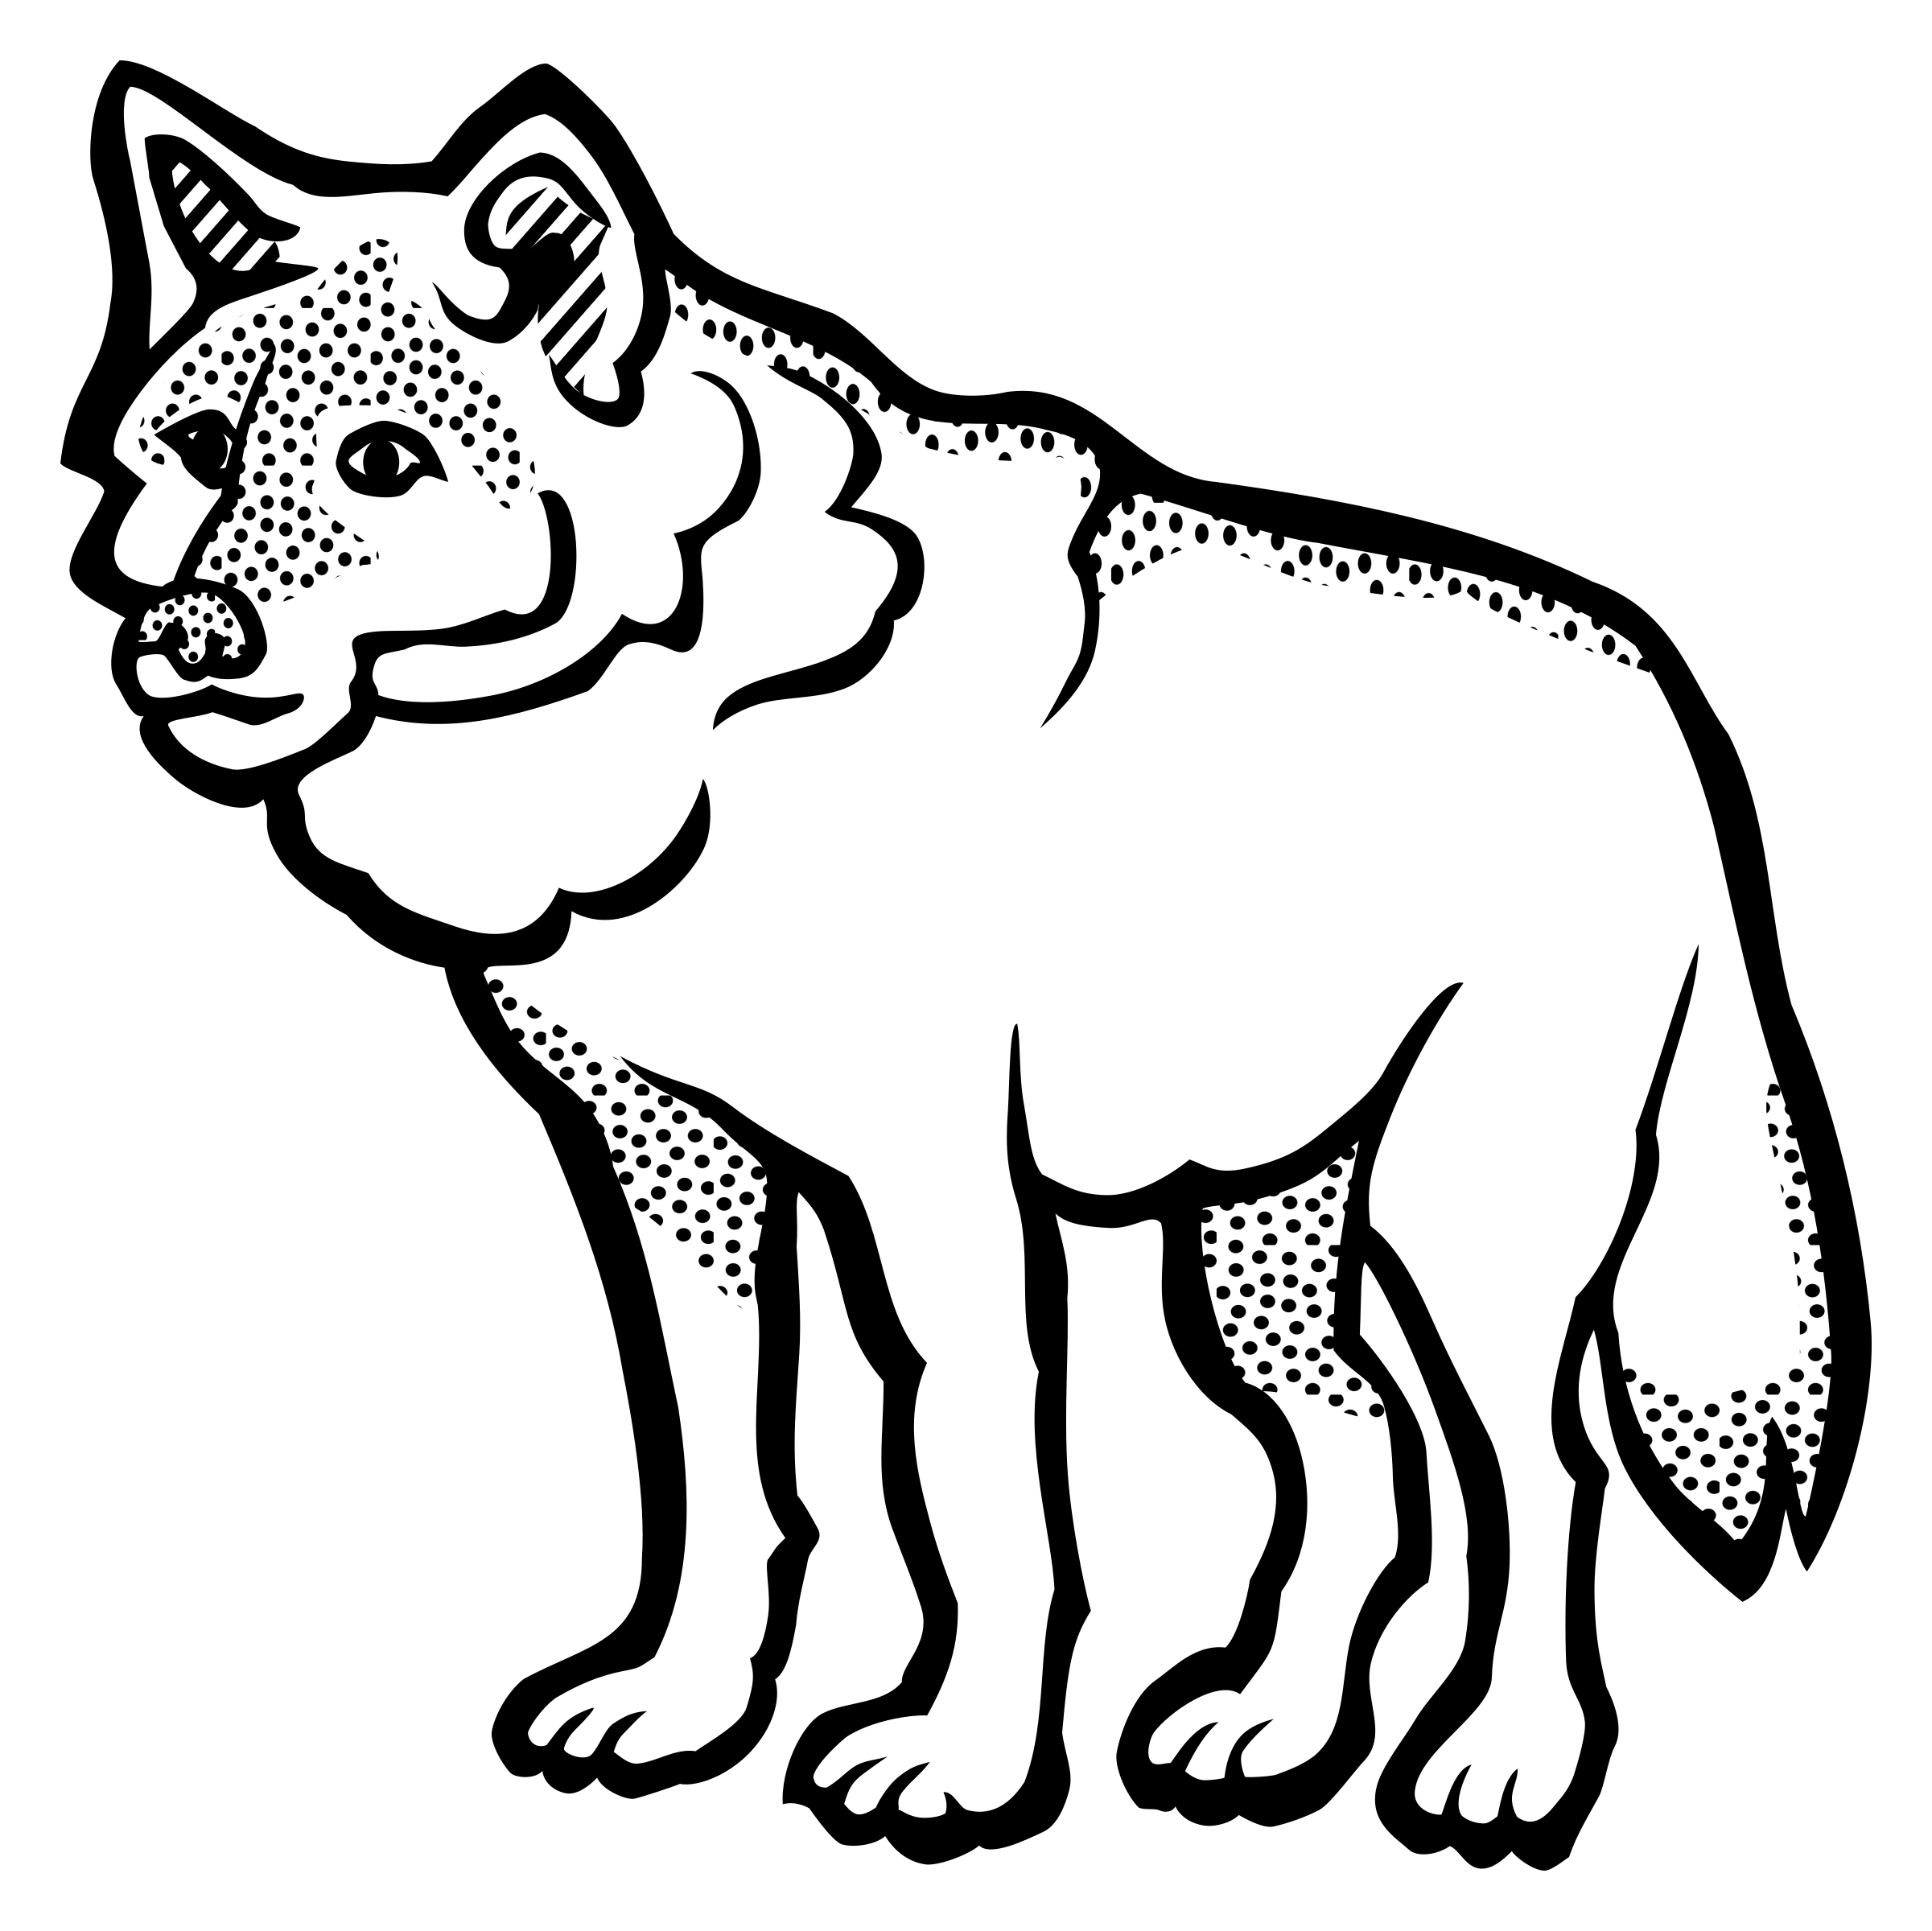 Lineart big image png. Wolf clipart line